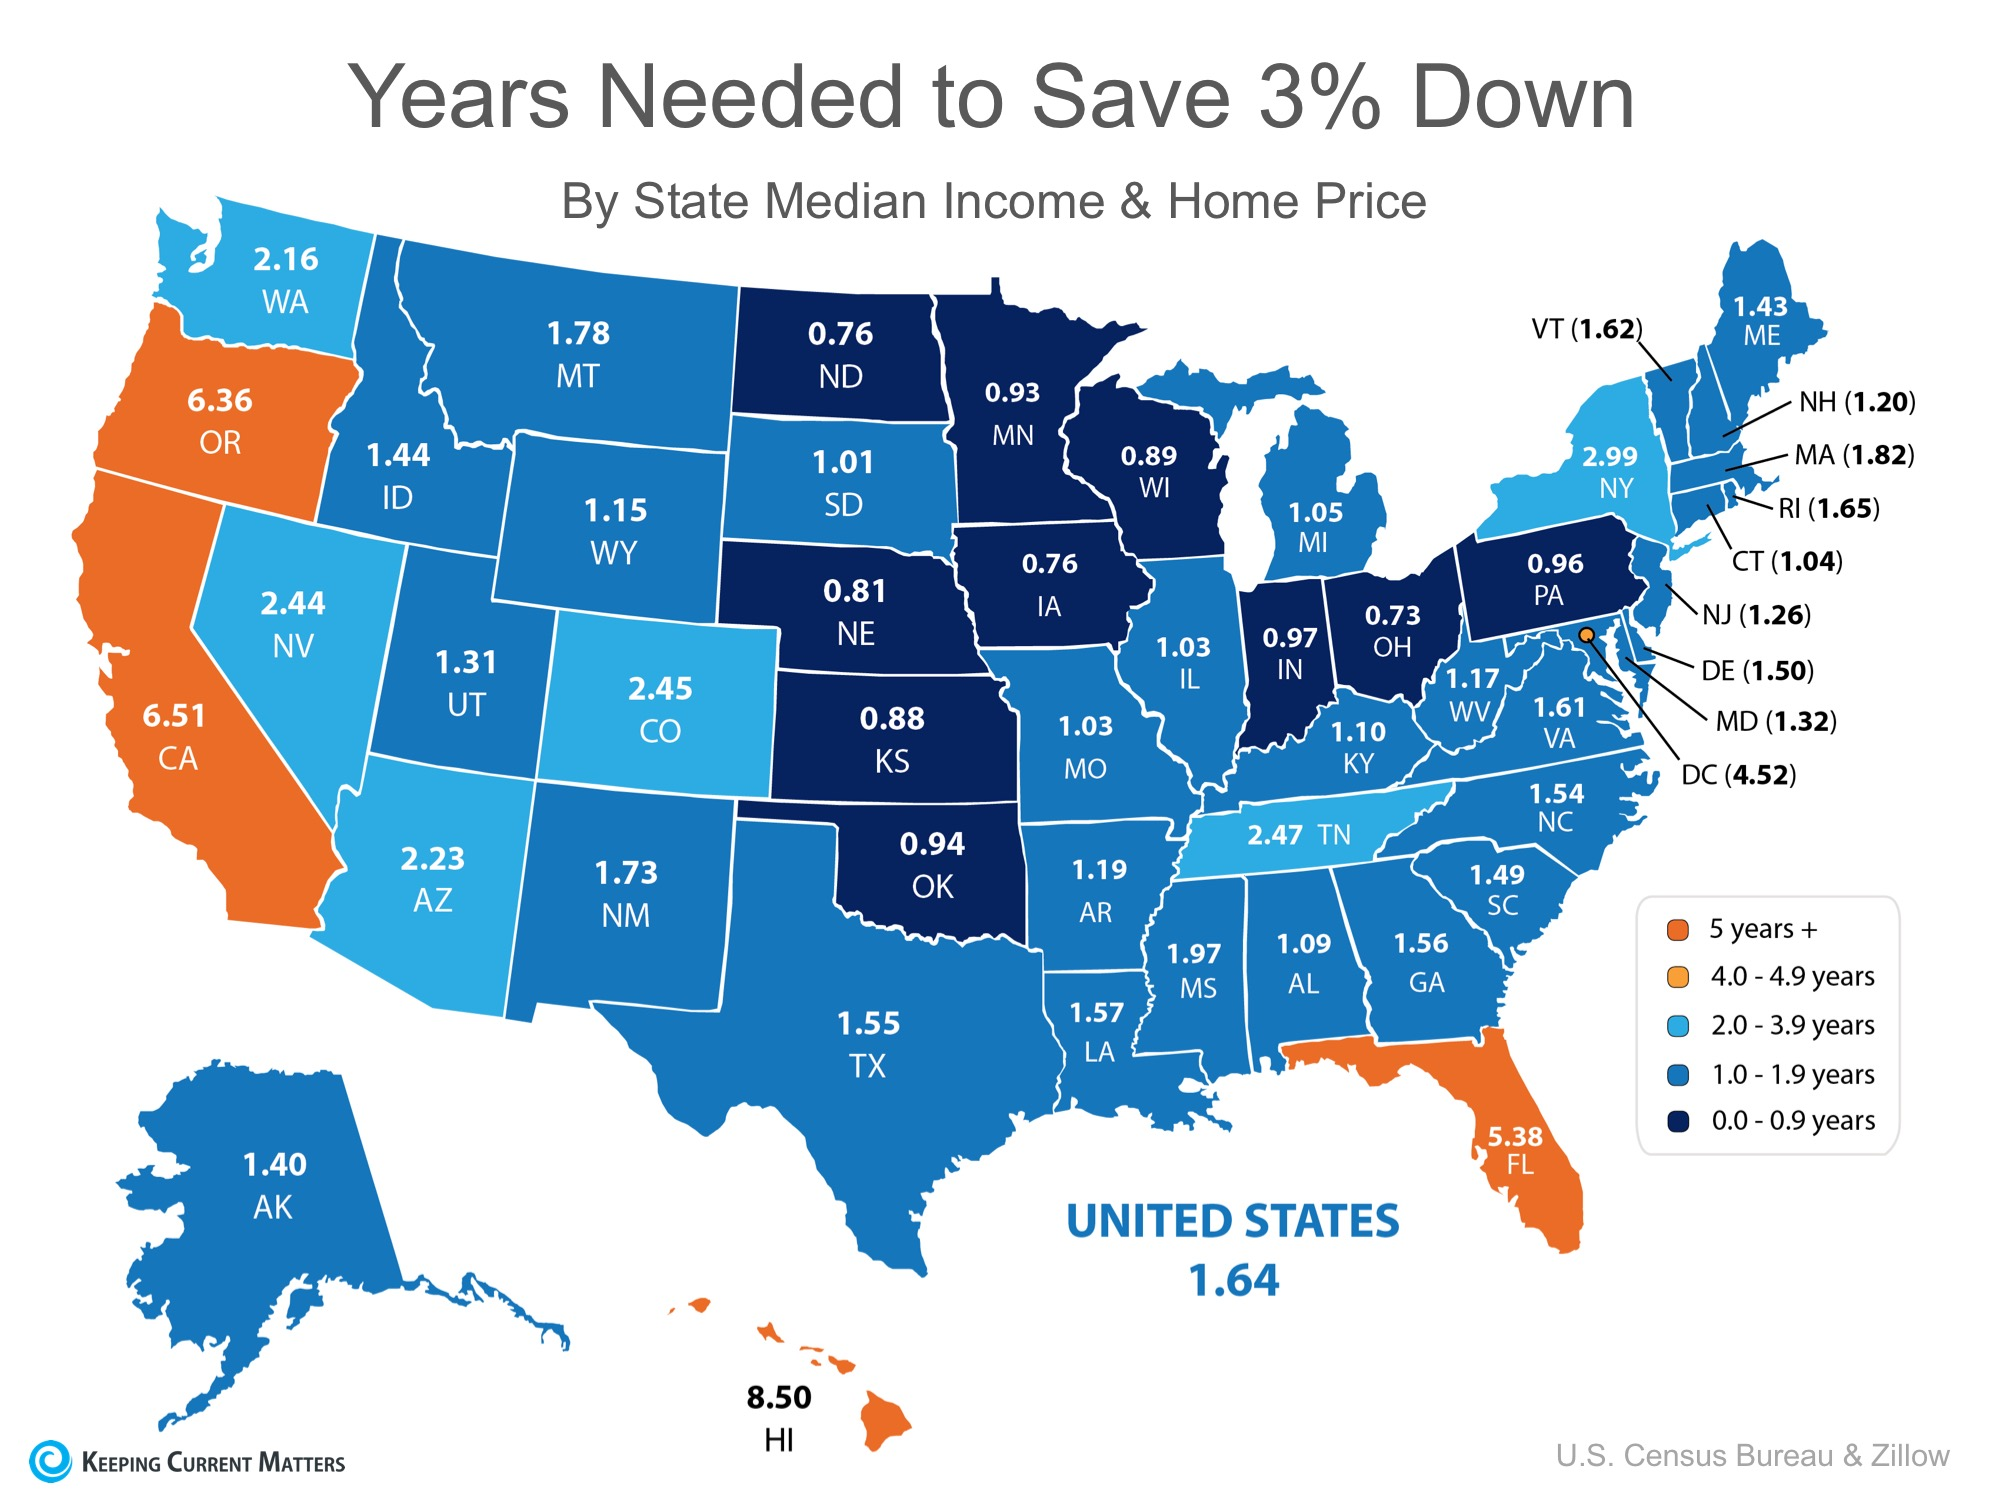 Years needed to save 3% Down